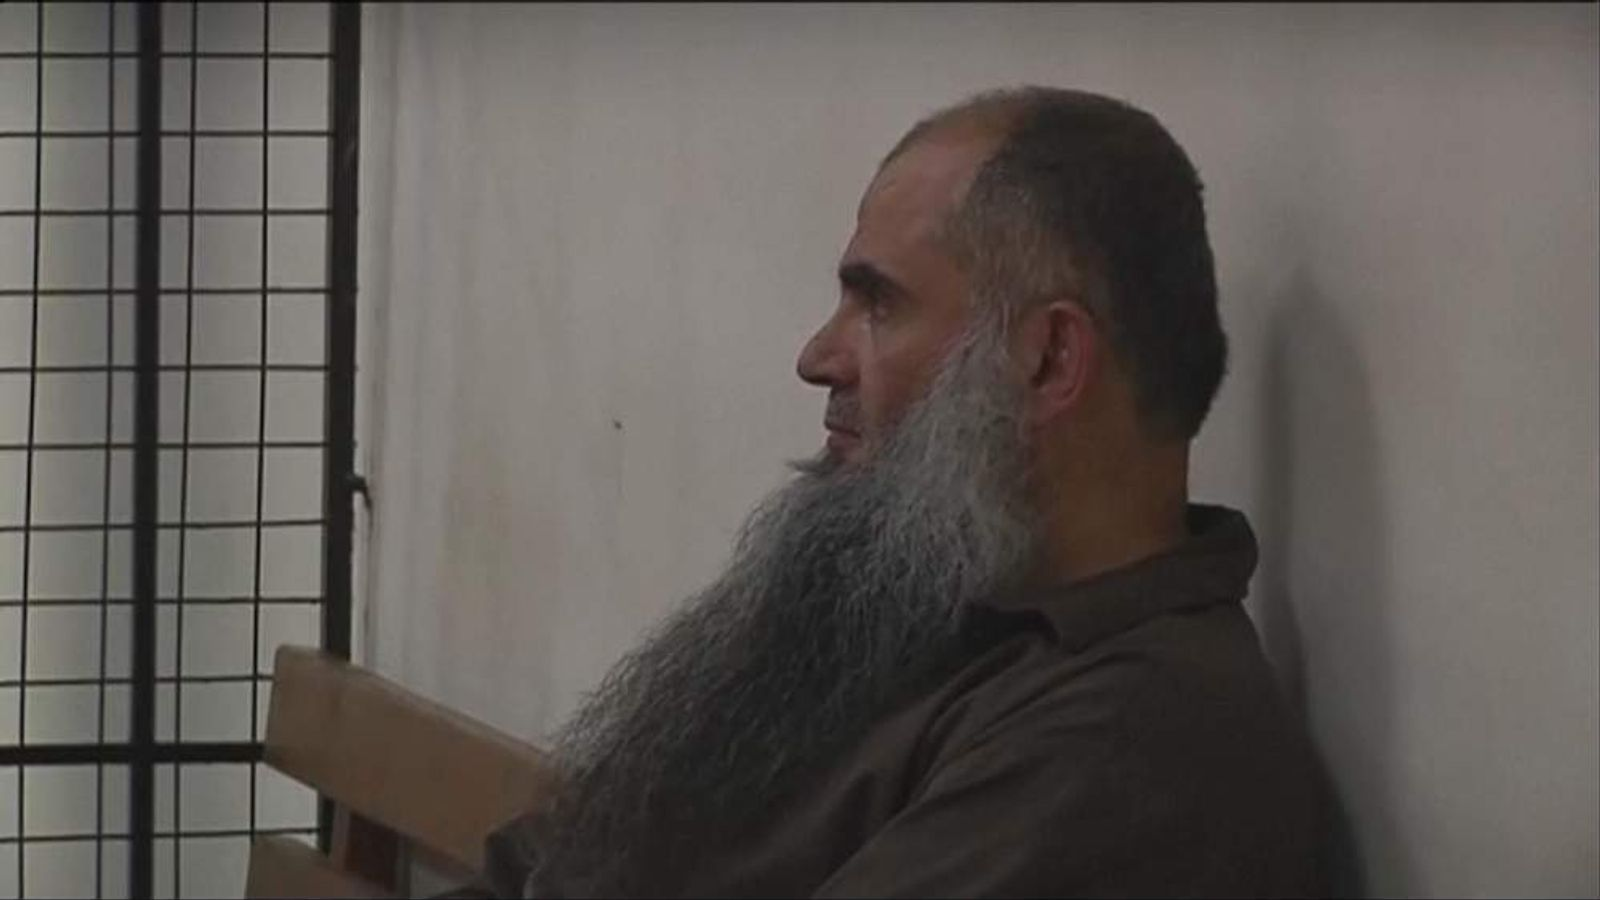 Abu Qatada in court in Jordan